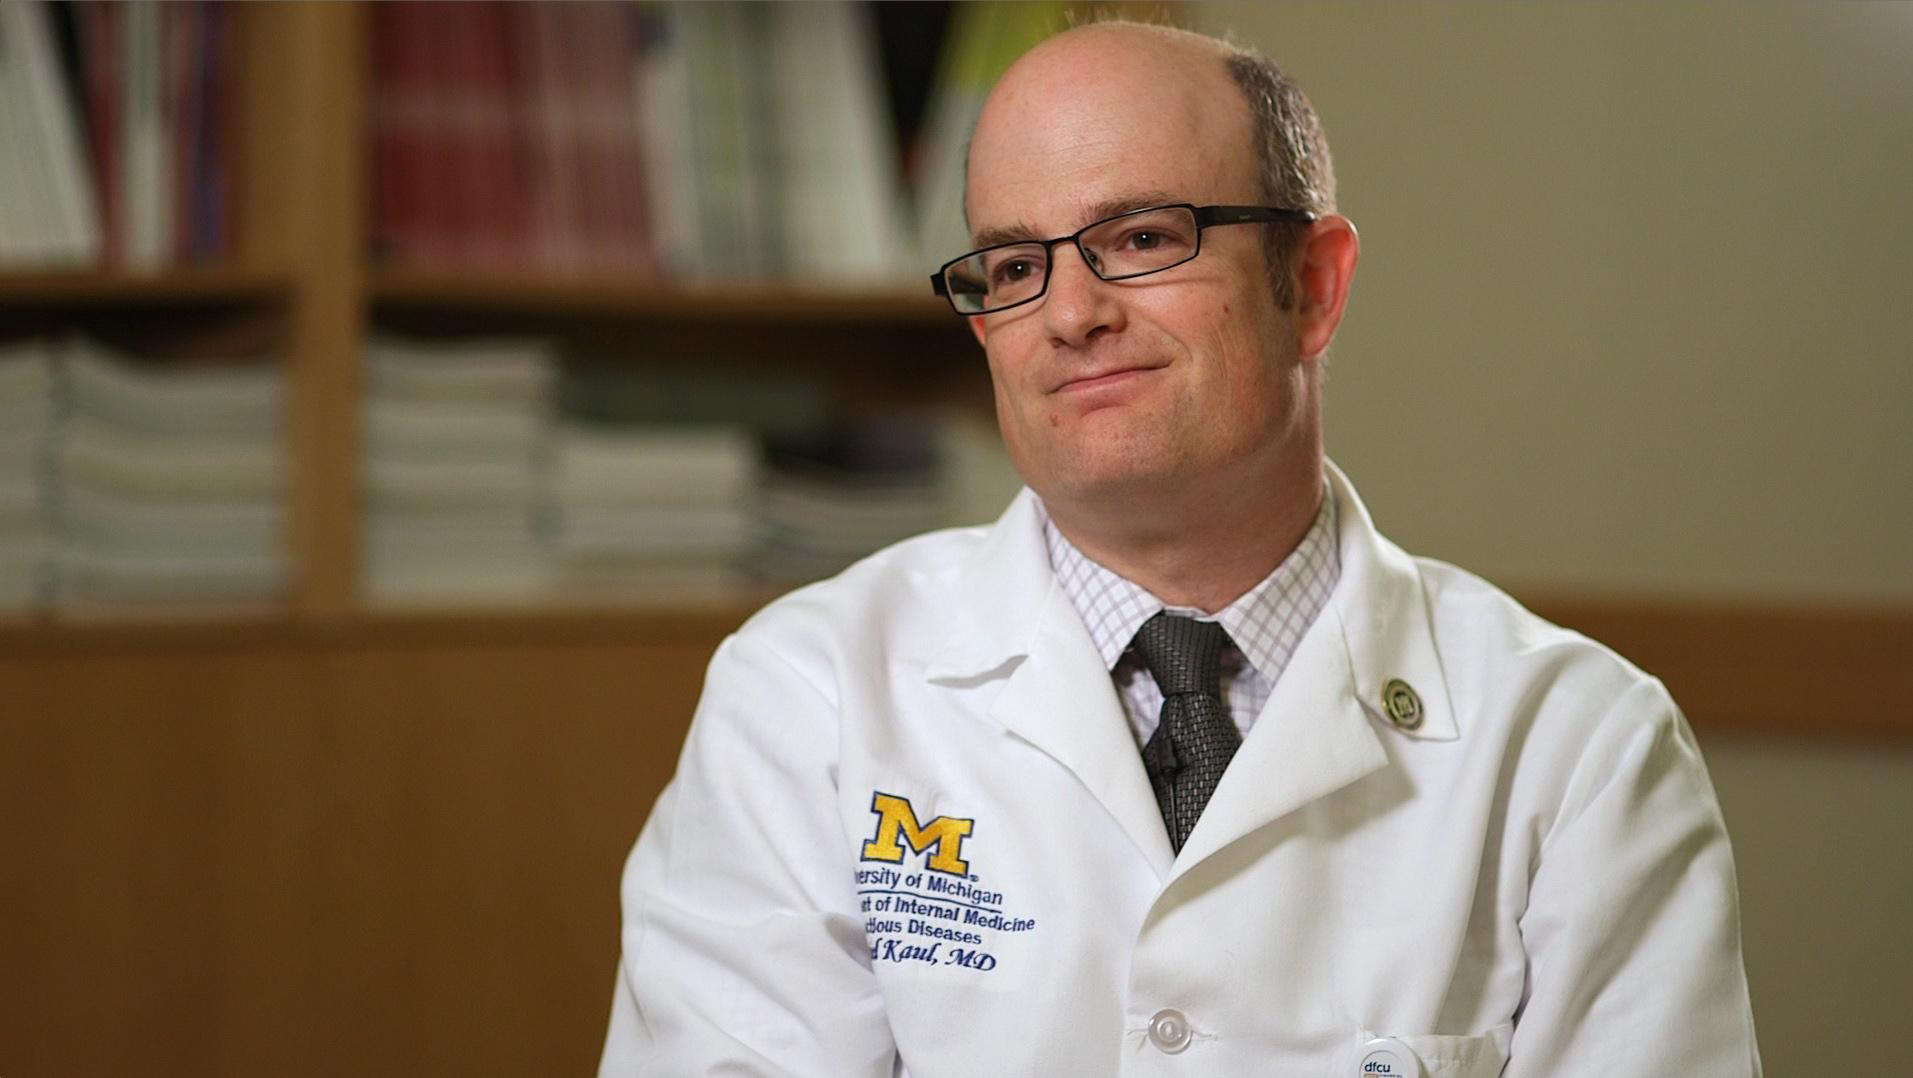 Dr. Daniel Kaul, director of the Transplant Infectious Disease Service at the University of Michigan Health System